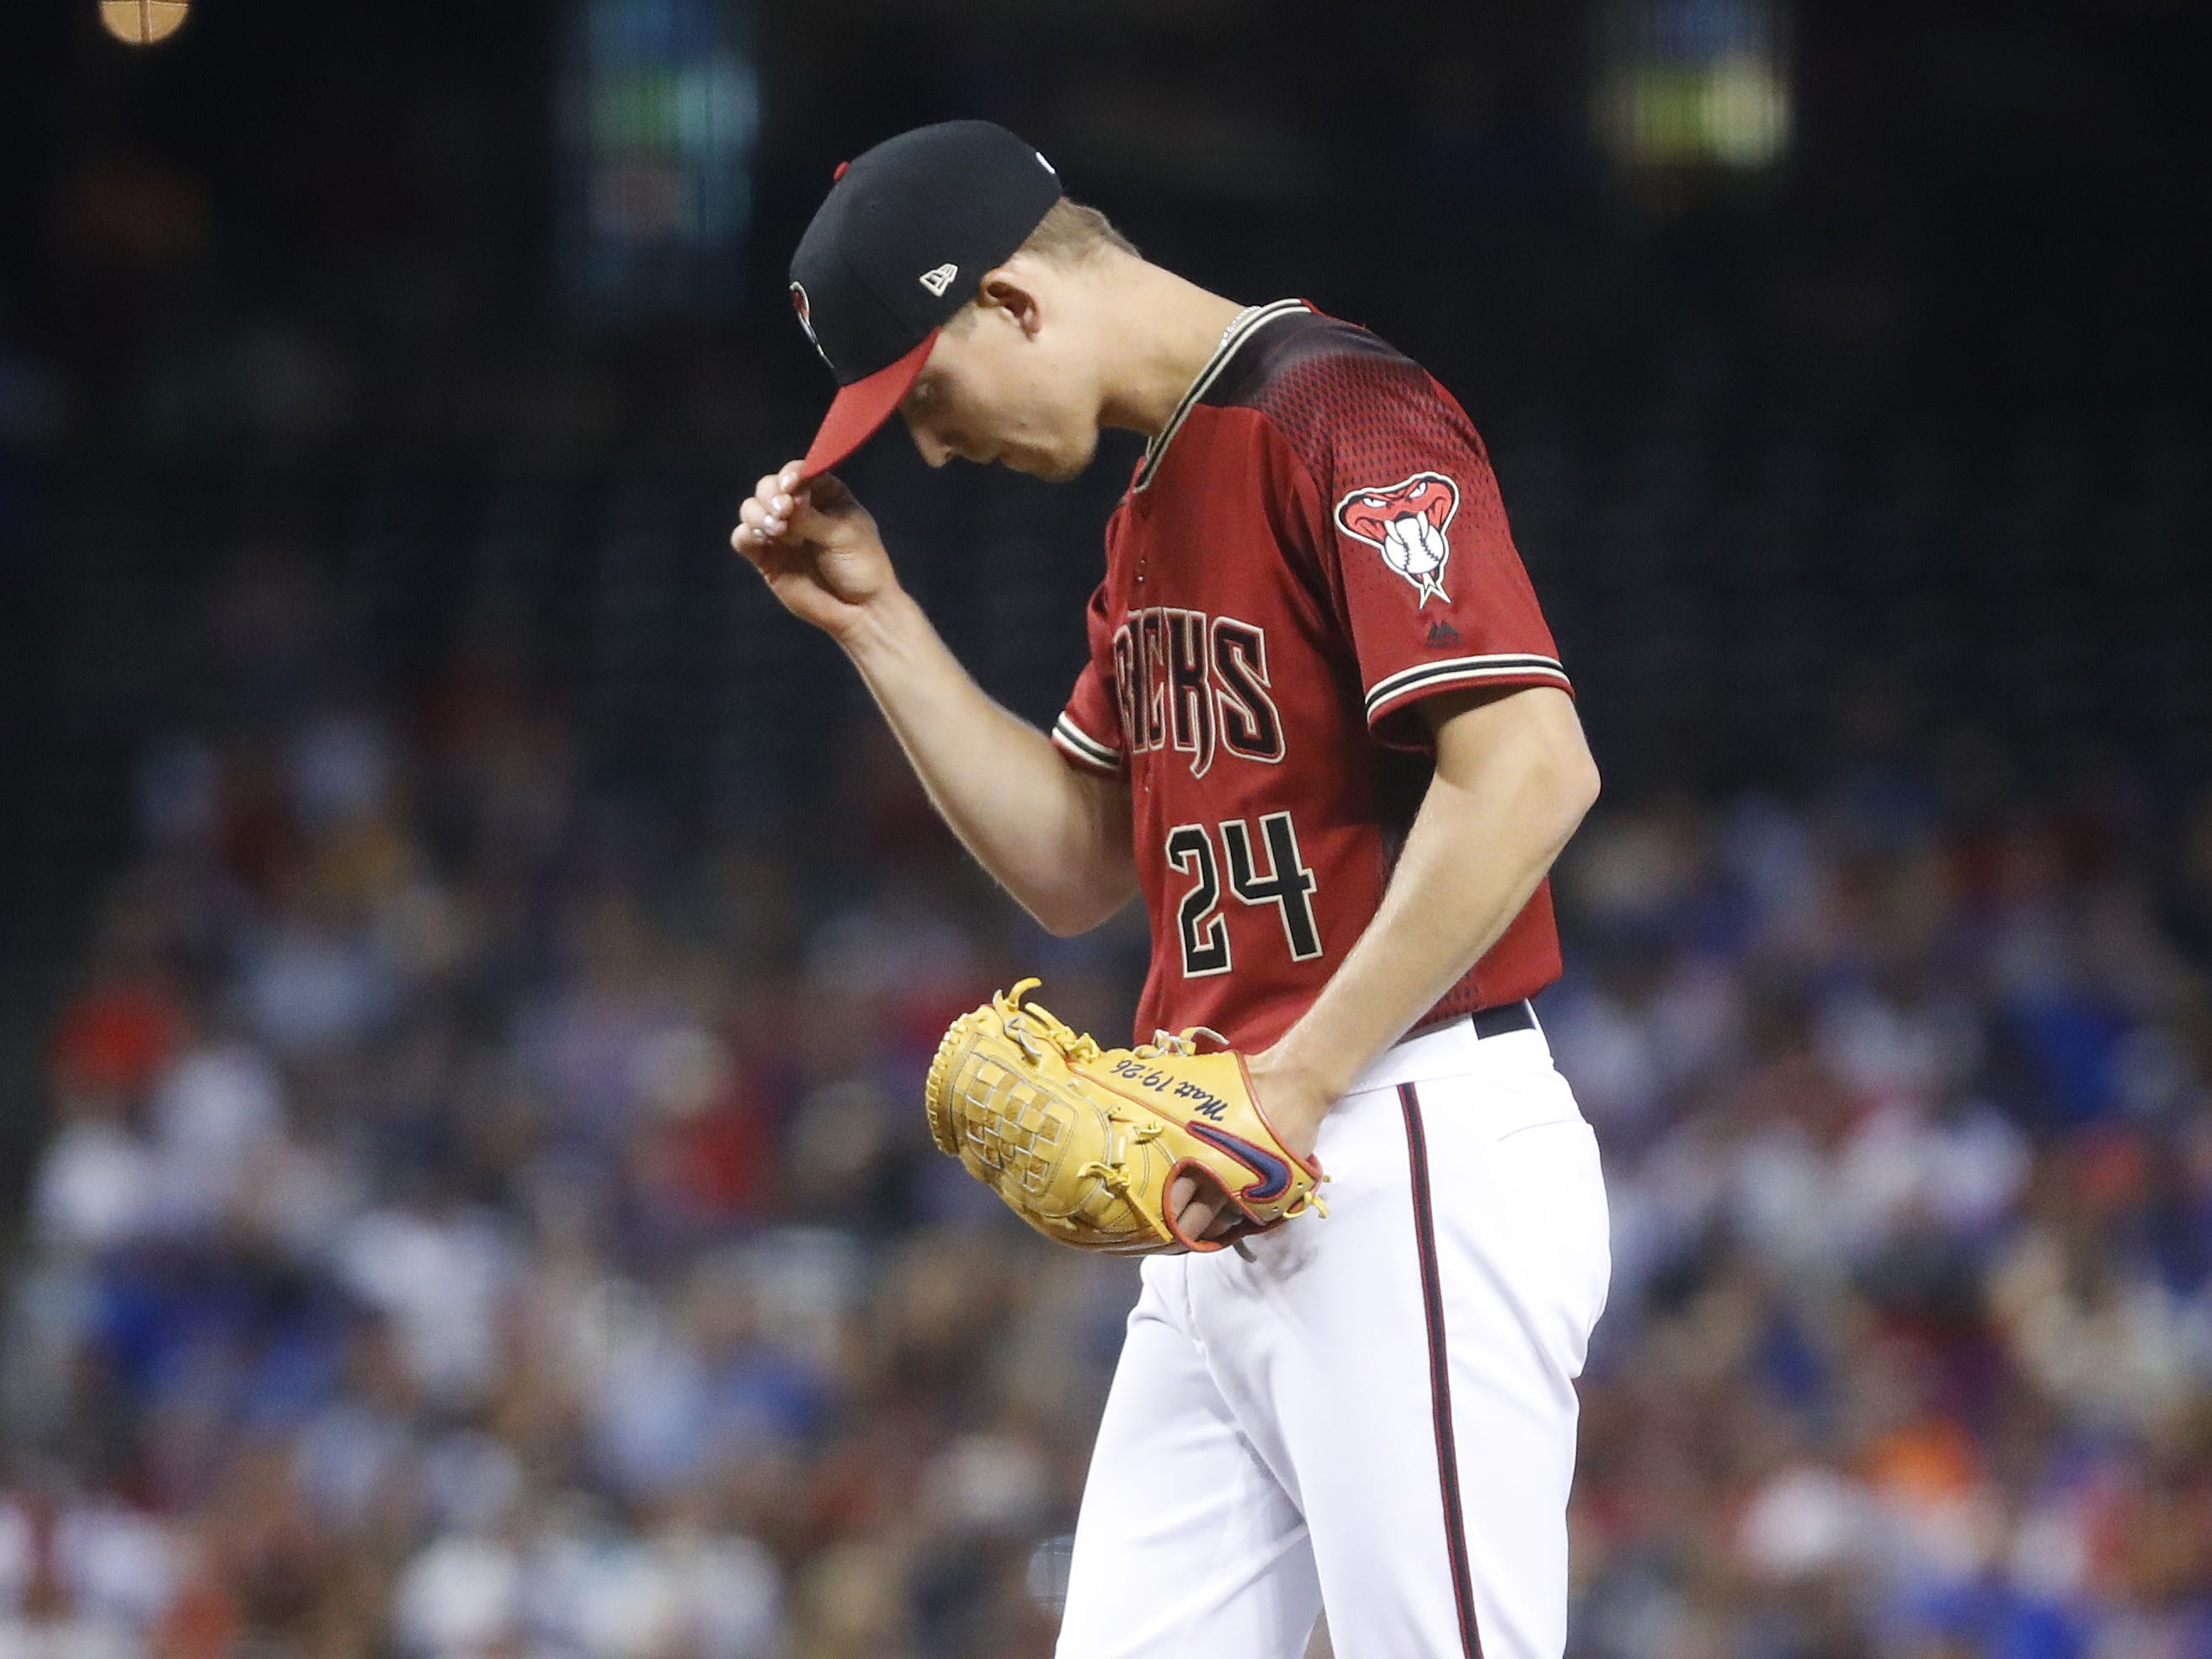 Diamondbacks' Luke Weaver (24) steadies himself on the mound during the first inning against the Cubs at Chase Field in Phoenix, Ariz. on April 28, 2019.